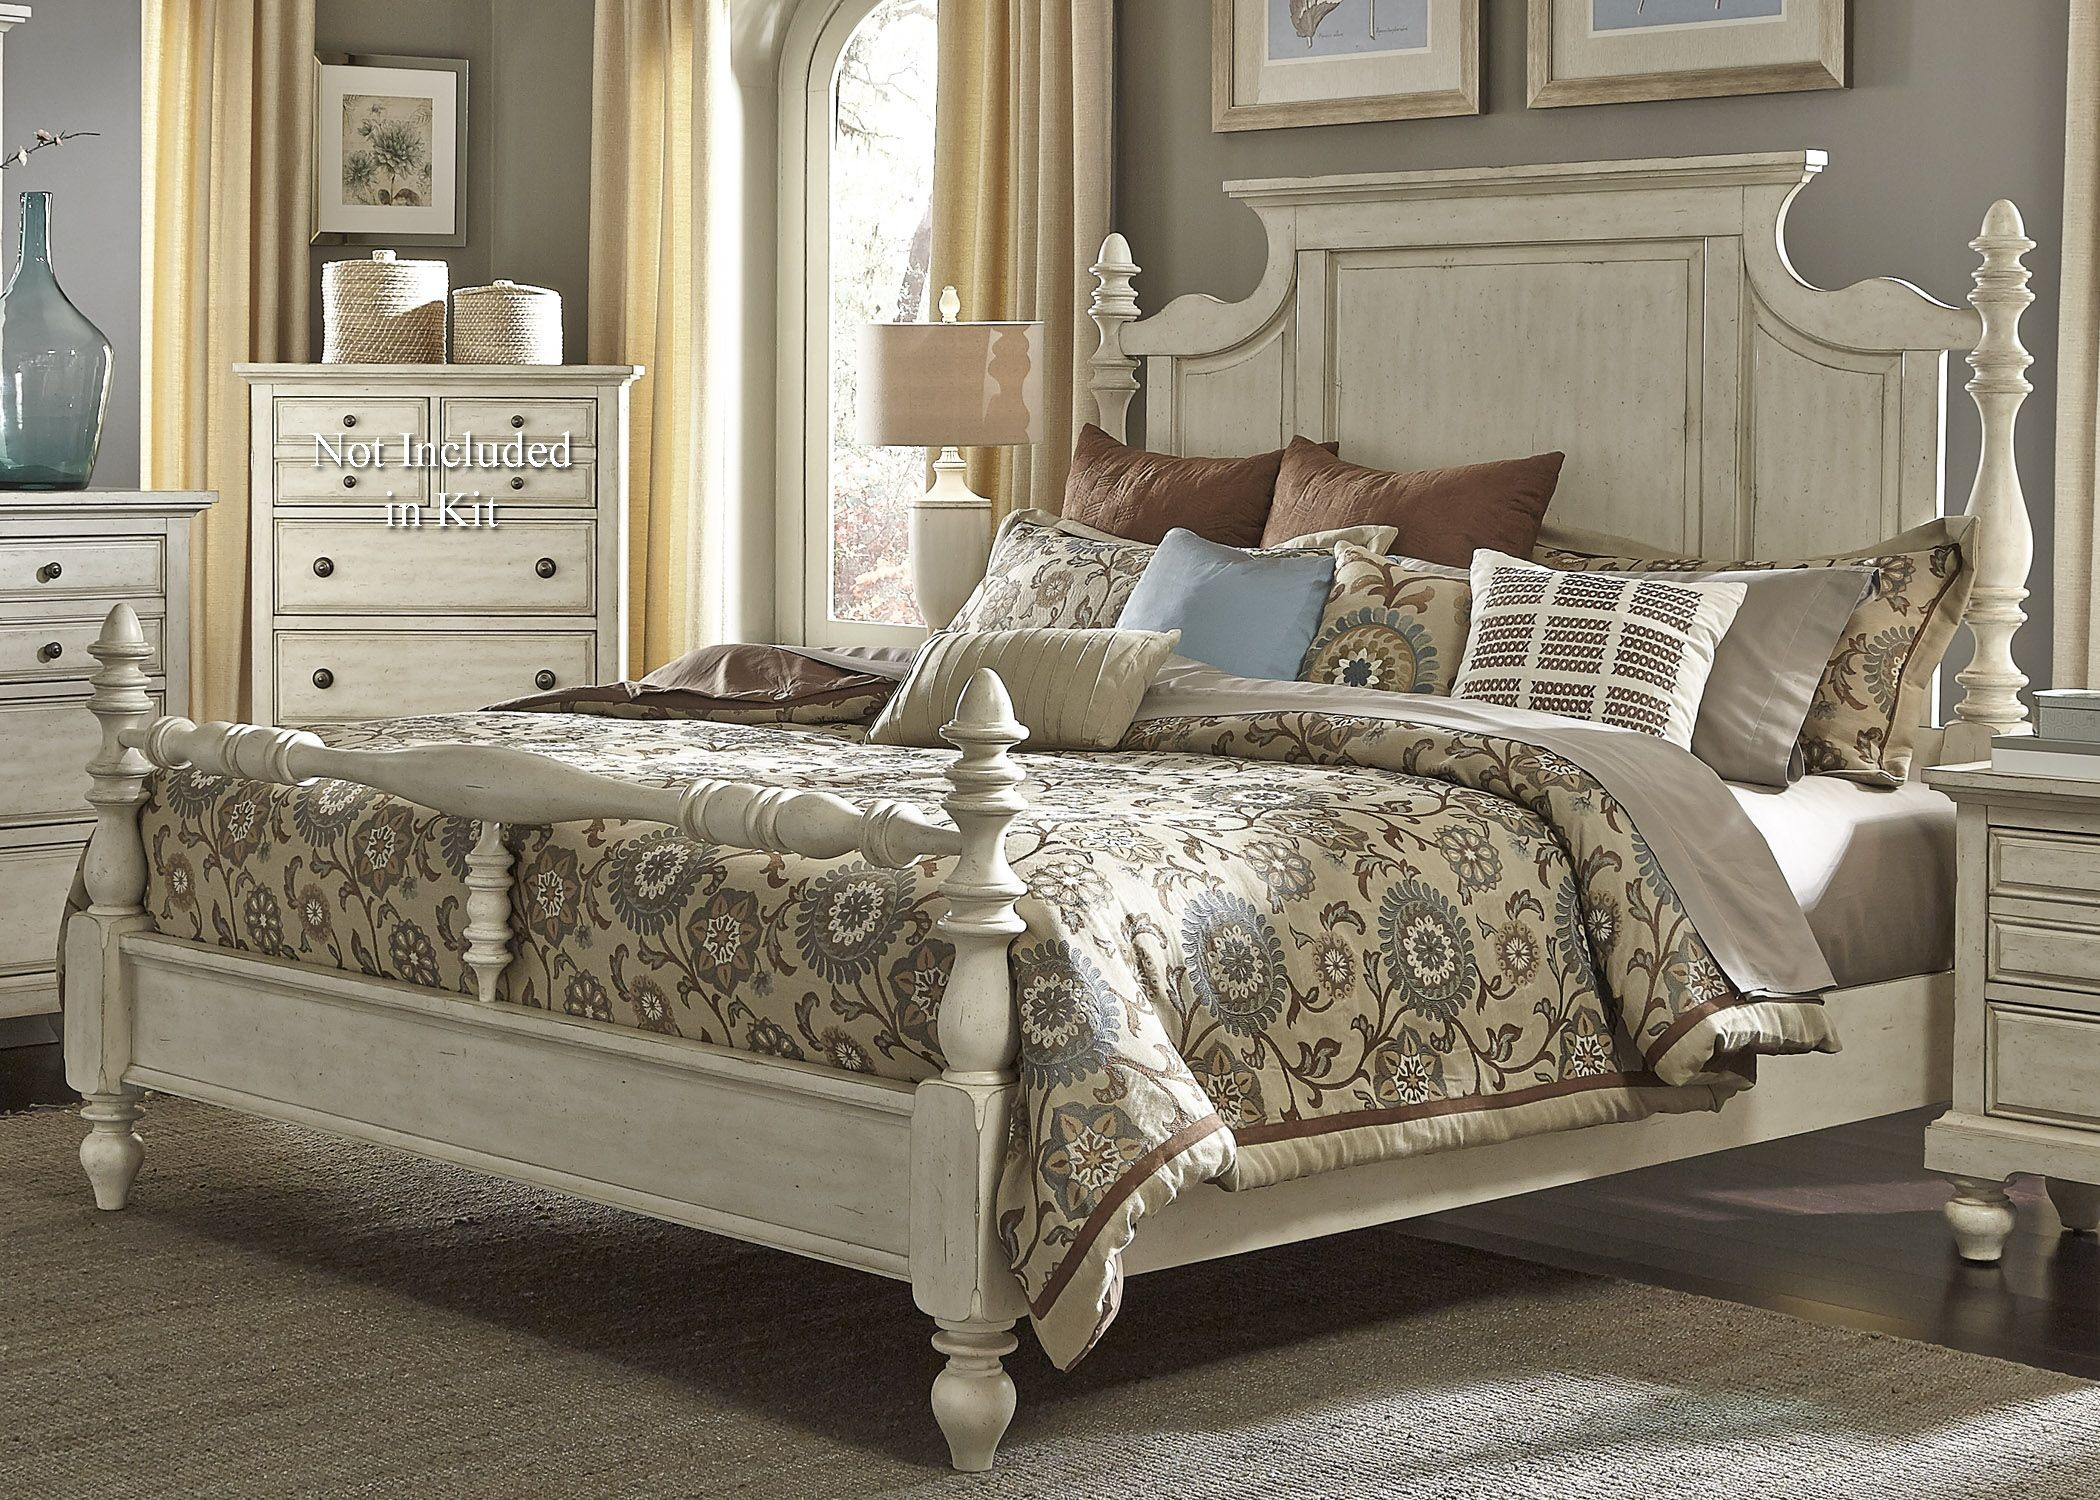 king poster bedroom sets. 774282 High Country White Poster Bedroom Set from Liberty  697 BR QPS